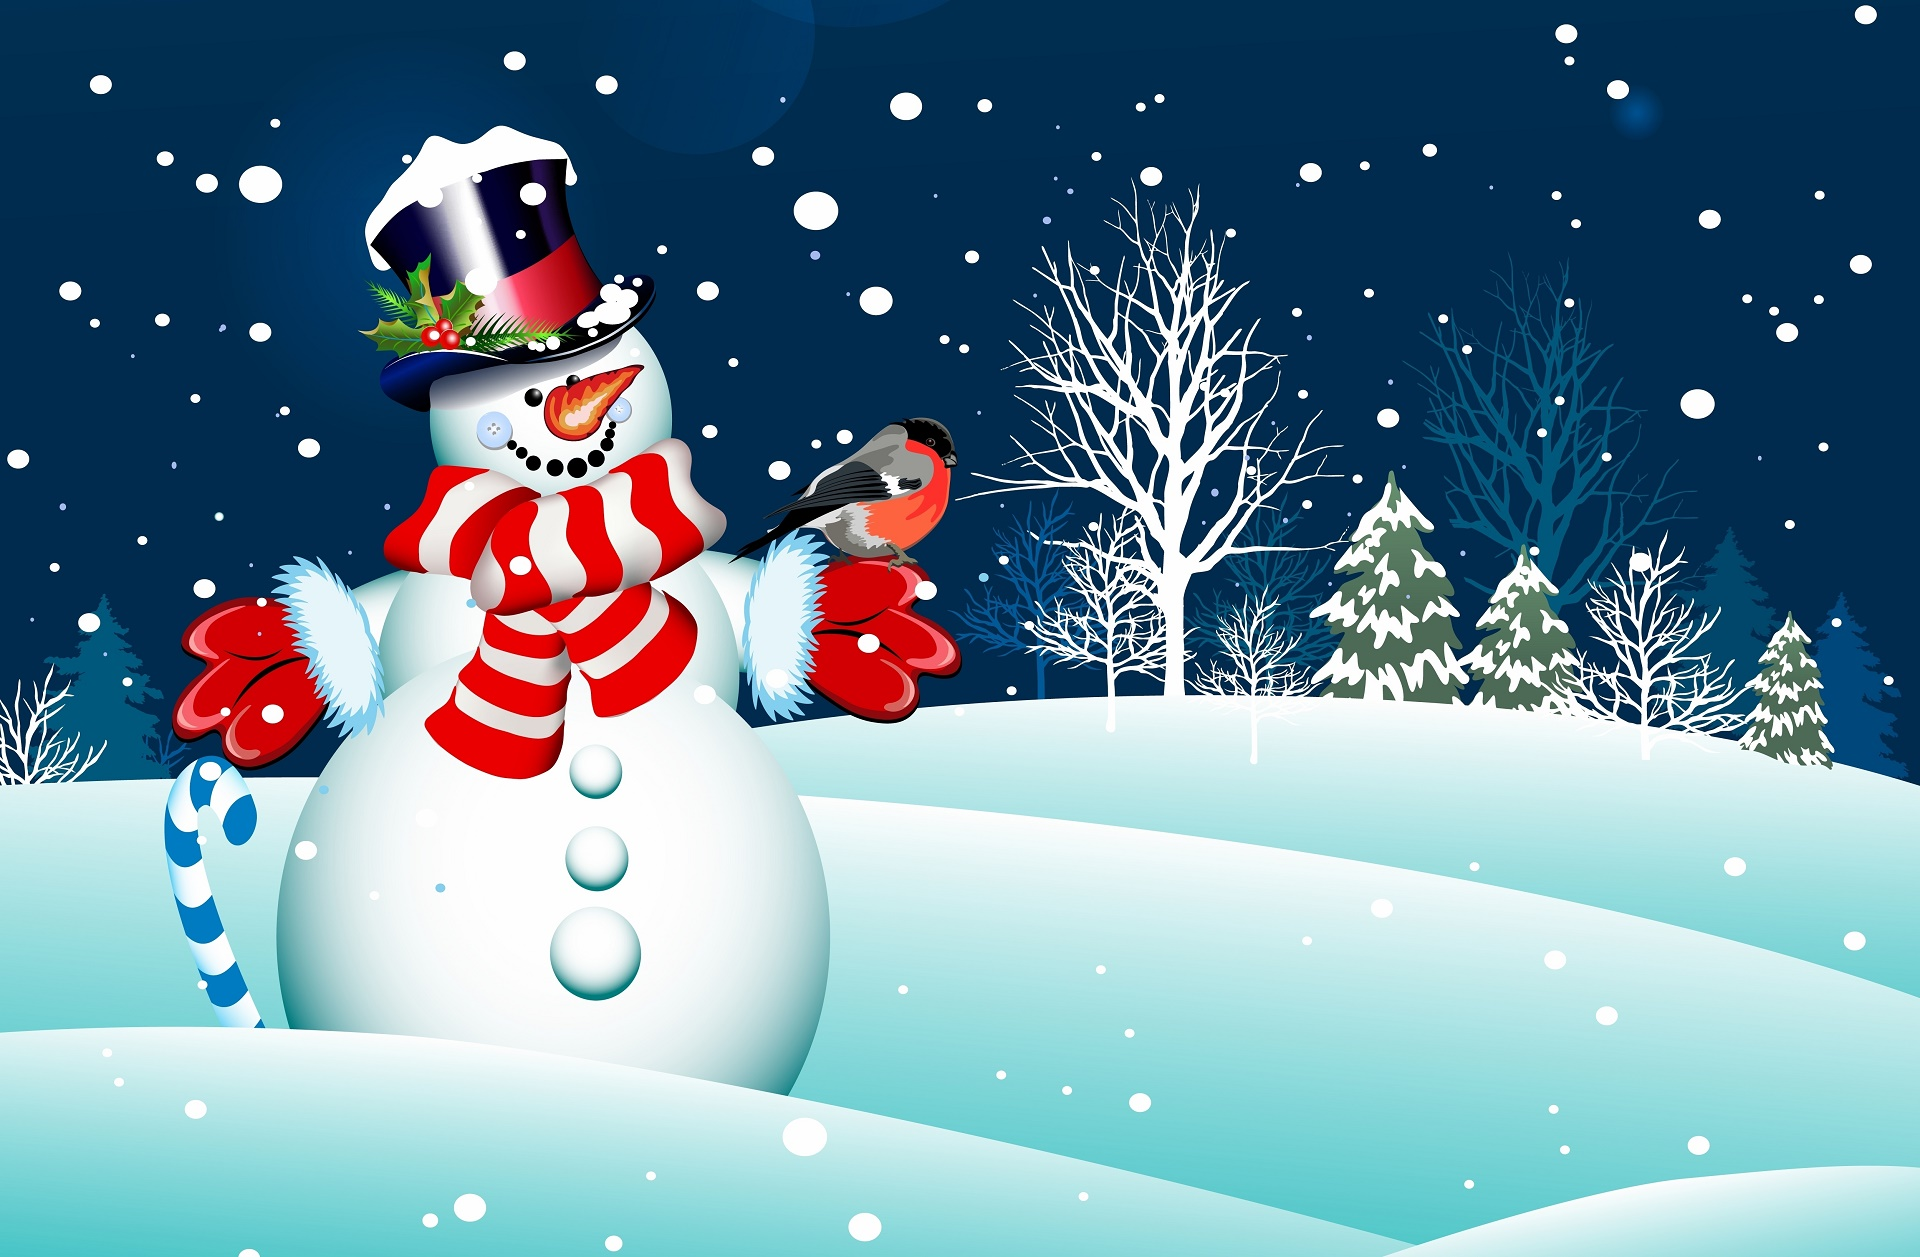 100 Holiday Desktop Backgrounds Hd Wallpapers: Snowman Wallpapers, Pictures, Images